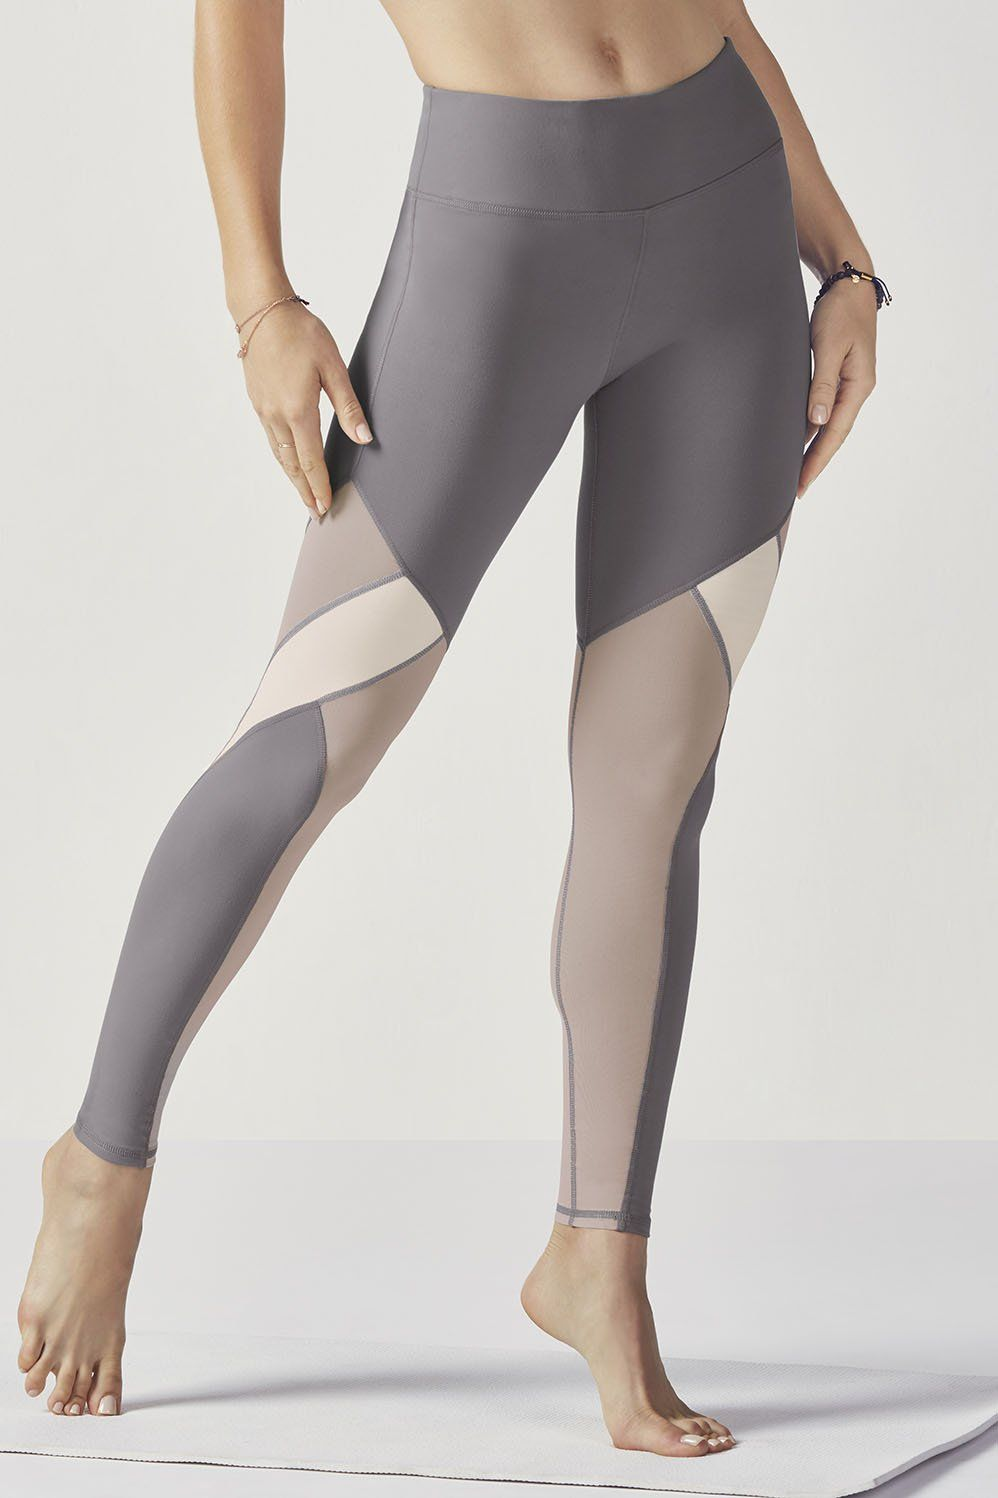 993b94d165d6 Show off some shimmer in our mixed media leggings with high-shine fabric  and breezy mesh panels all in one. Enjoy superior technology with all-way  stretch